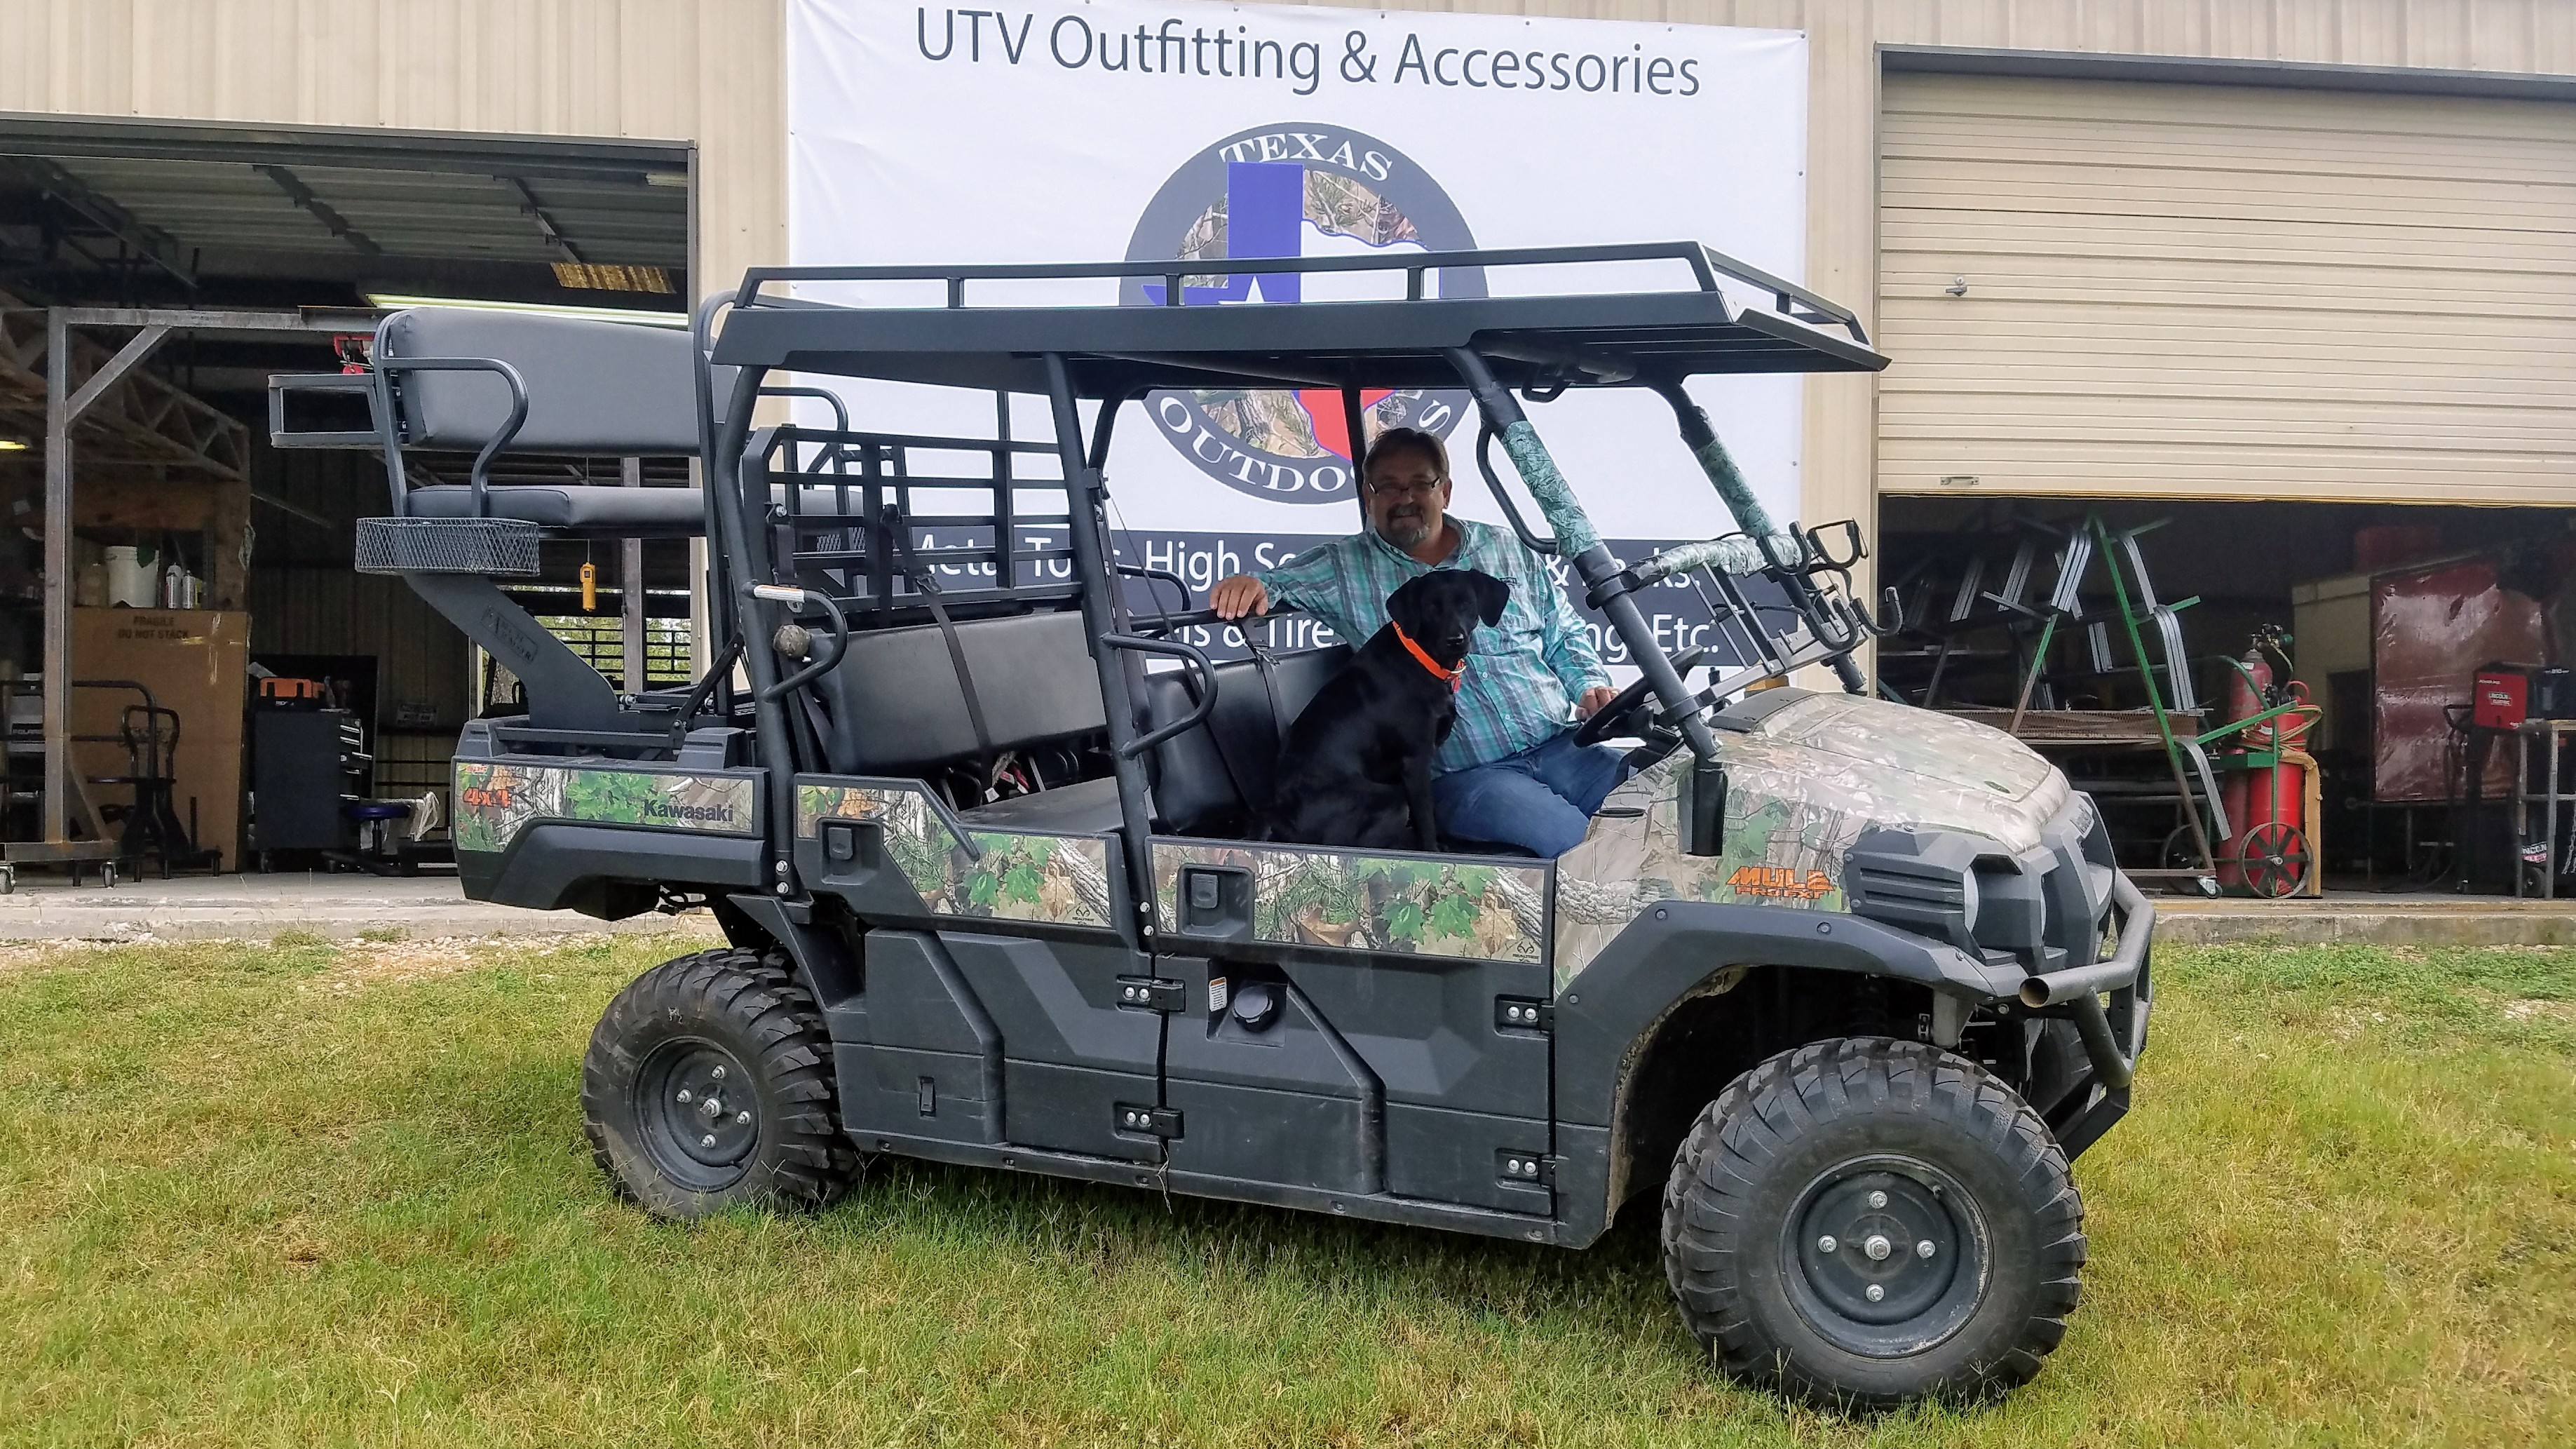 kawasaki-mule-pro-fxt-metal-roof-and-high-seat-texas-ranch-armor-utv-customer-photo.jpg